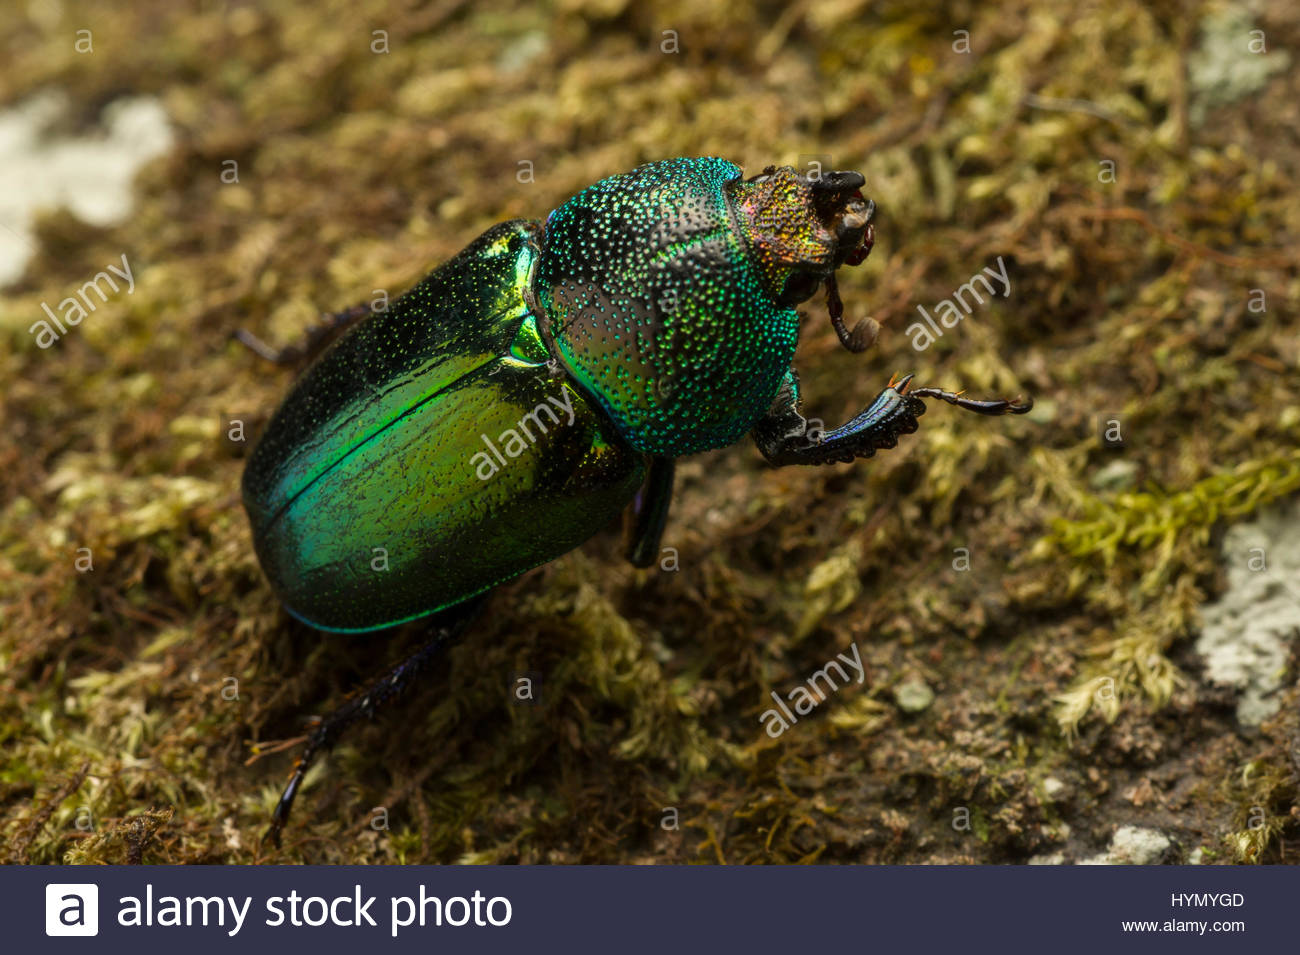 An extreme close up view of an iridescent green Christmas beetle, Anoplognathus, moving on the moss-covered forest - Stock Image